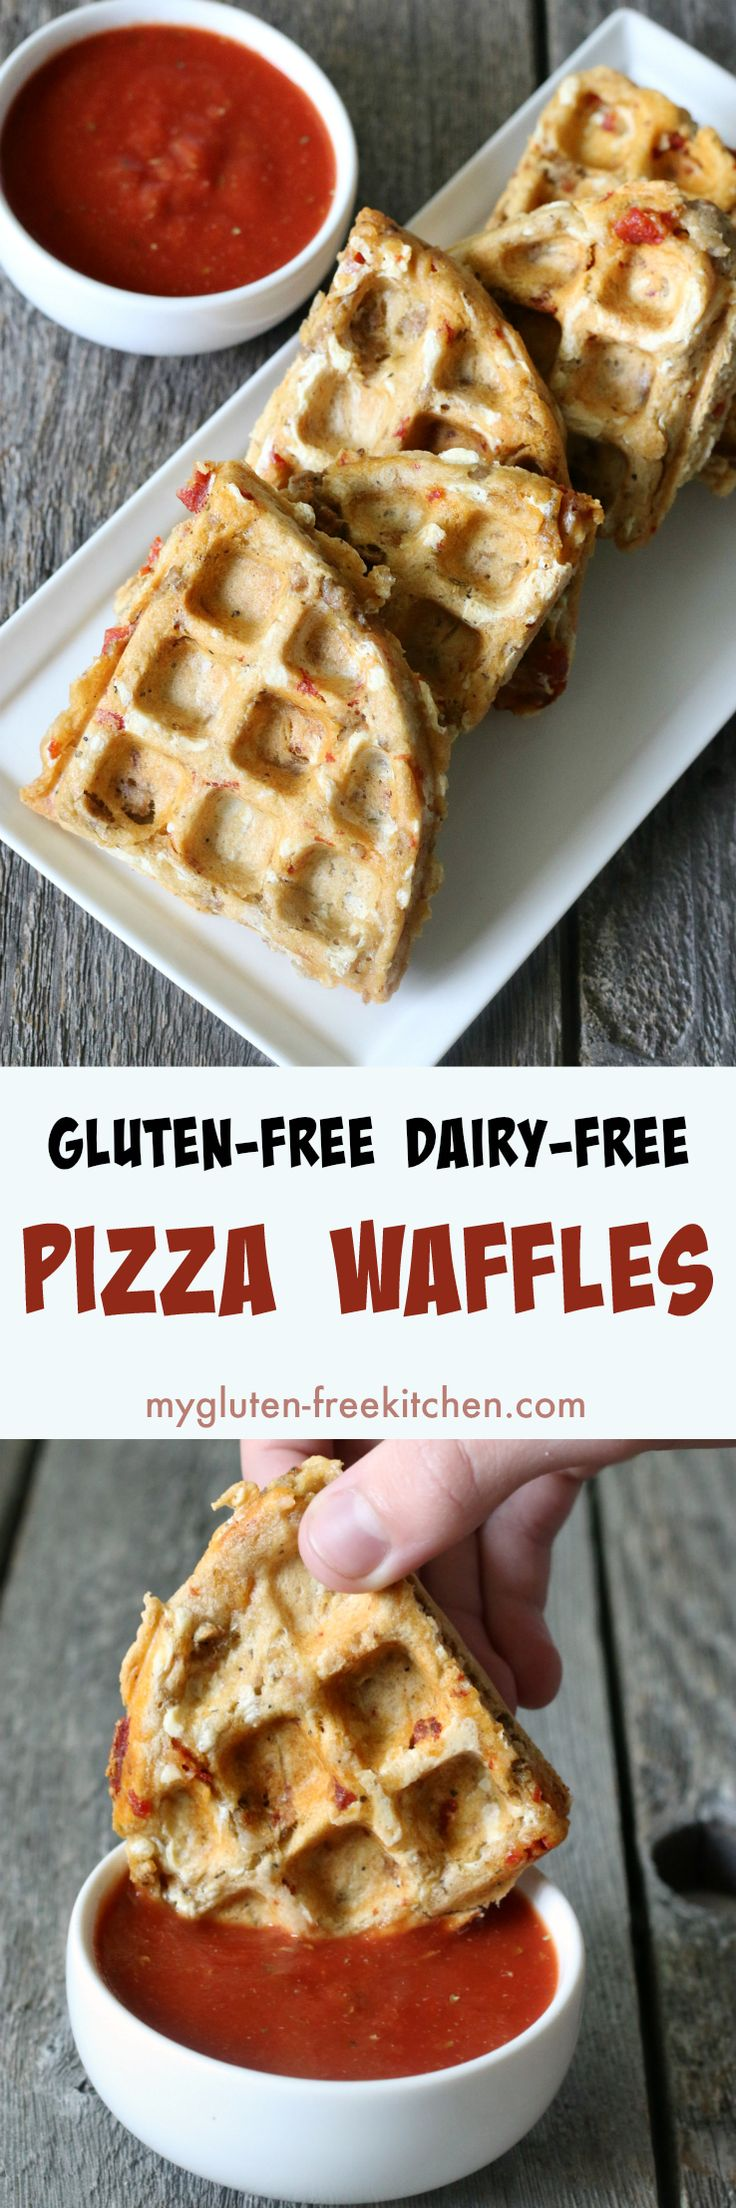 Gluten-free Pizza Waffles (dairy-free and top 8 free too)